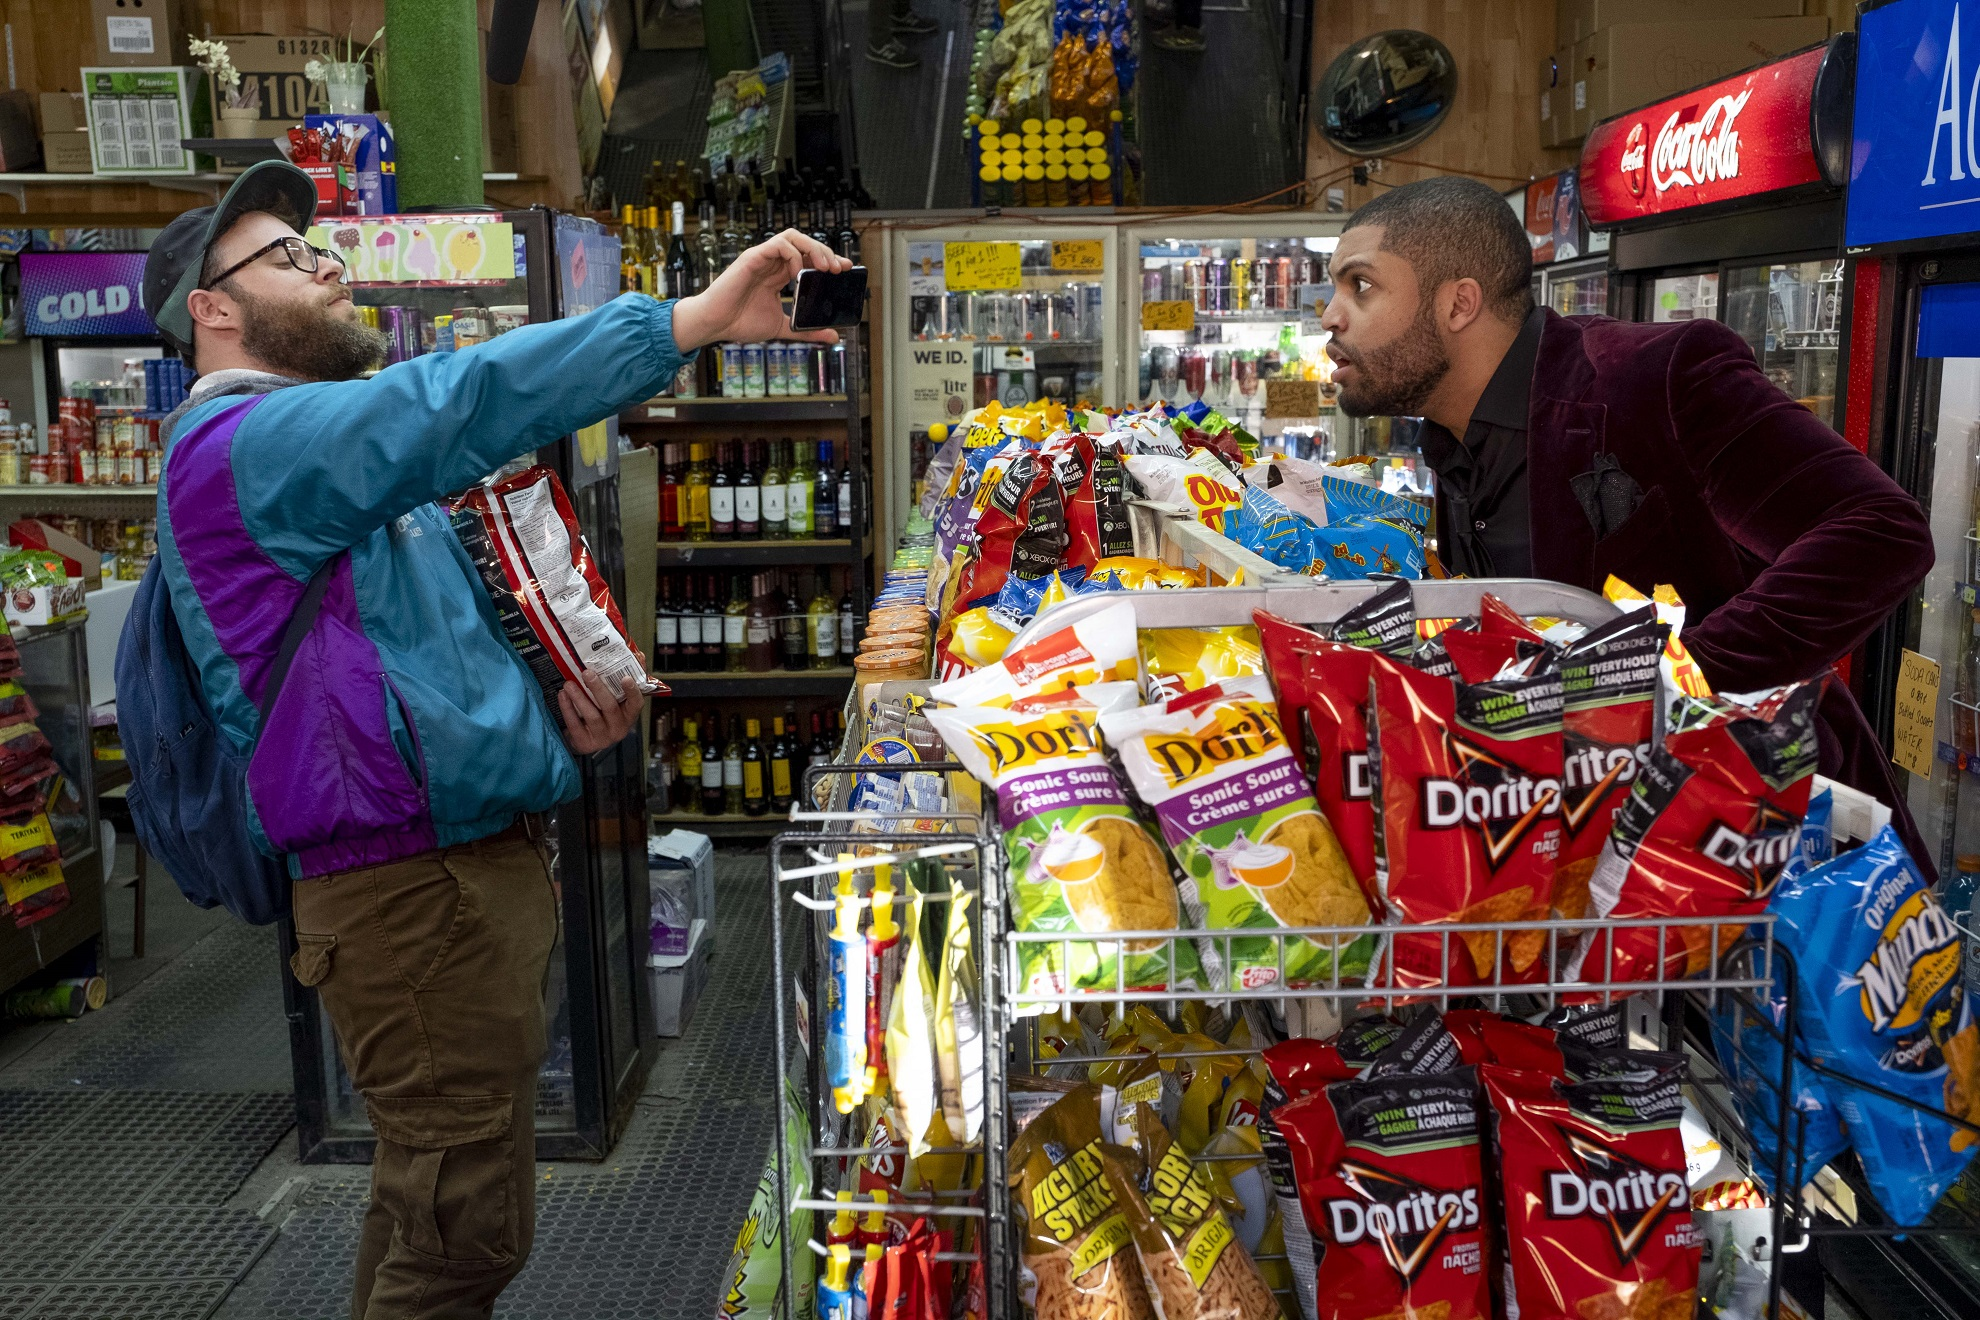 O'Shea Jackson Jr. and Seth Rogen in Long Shot